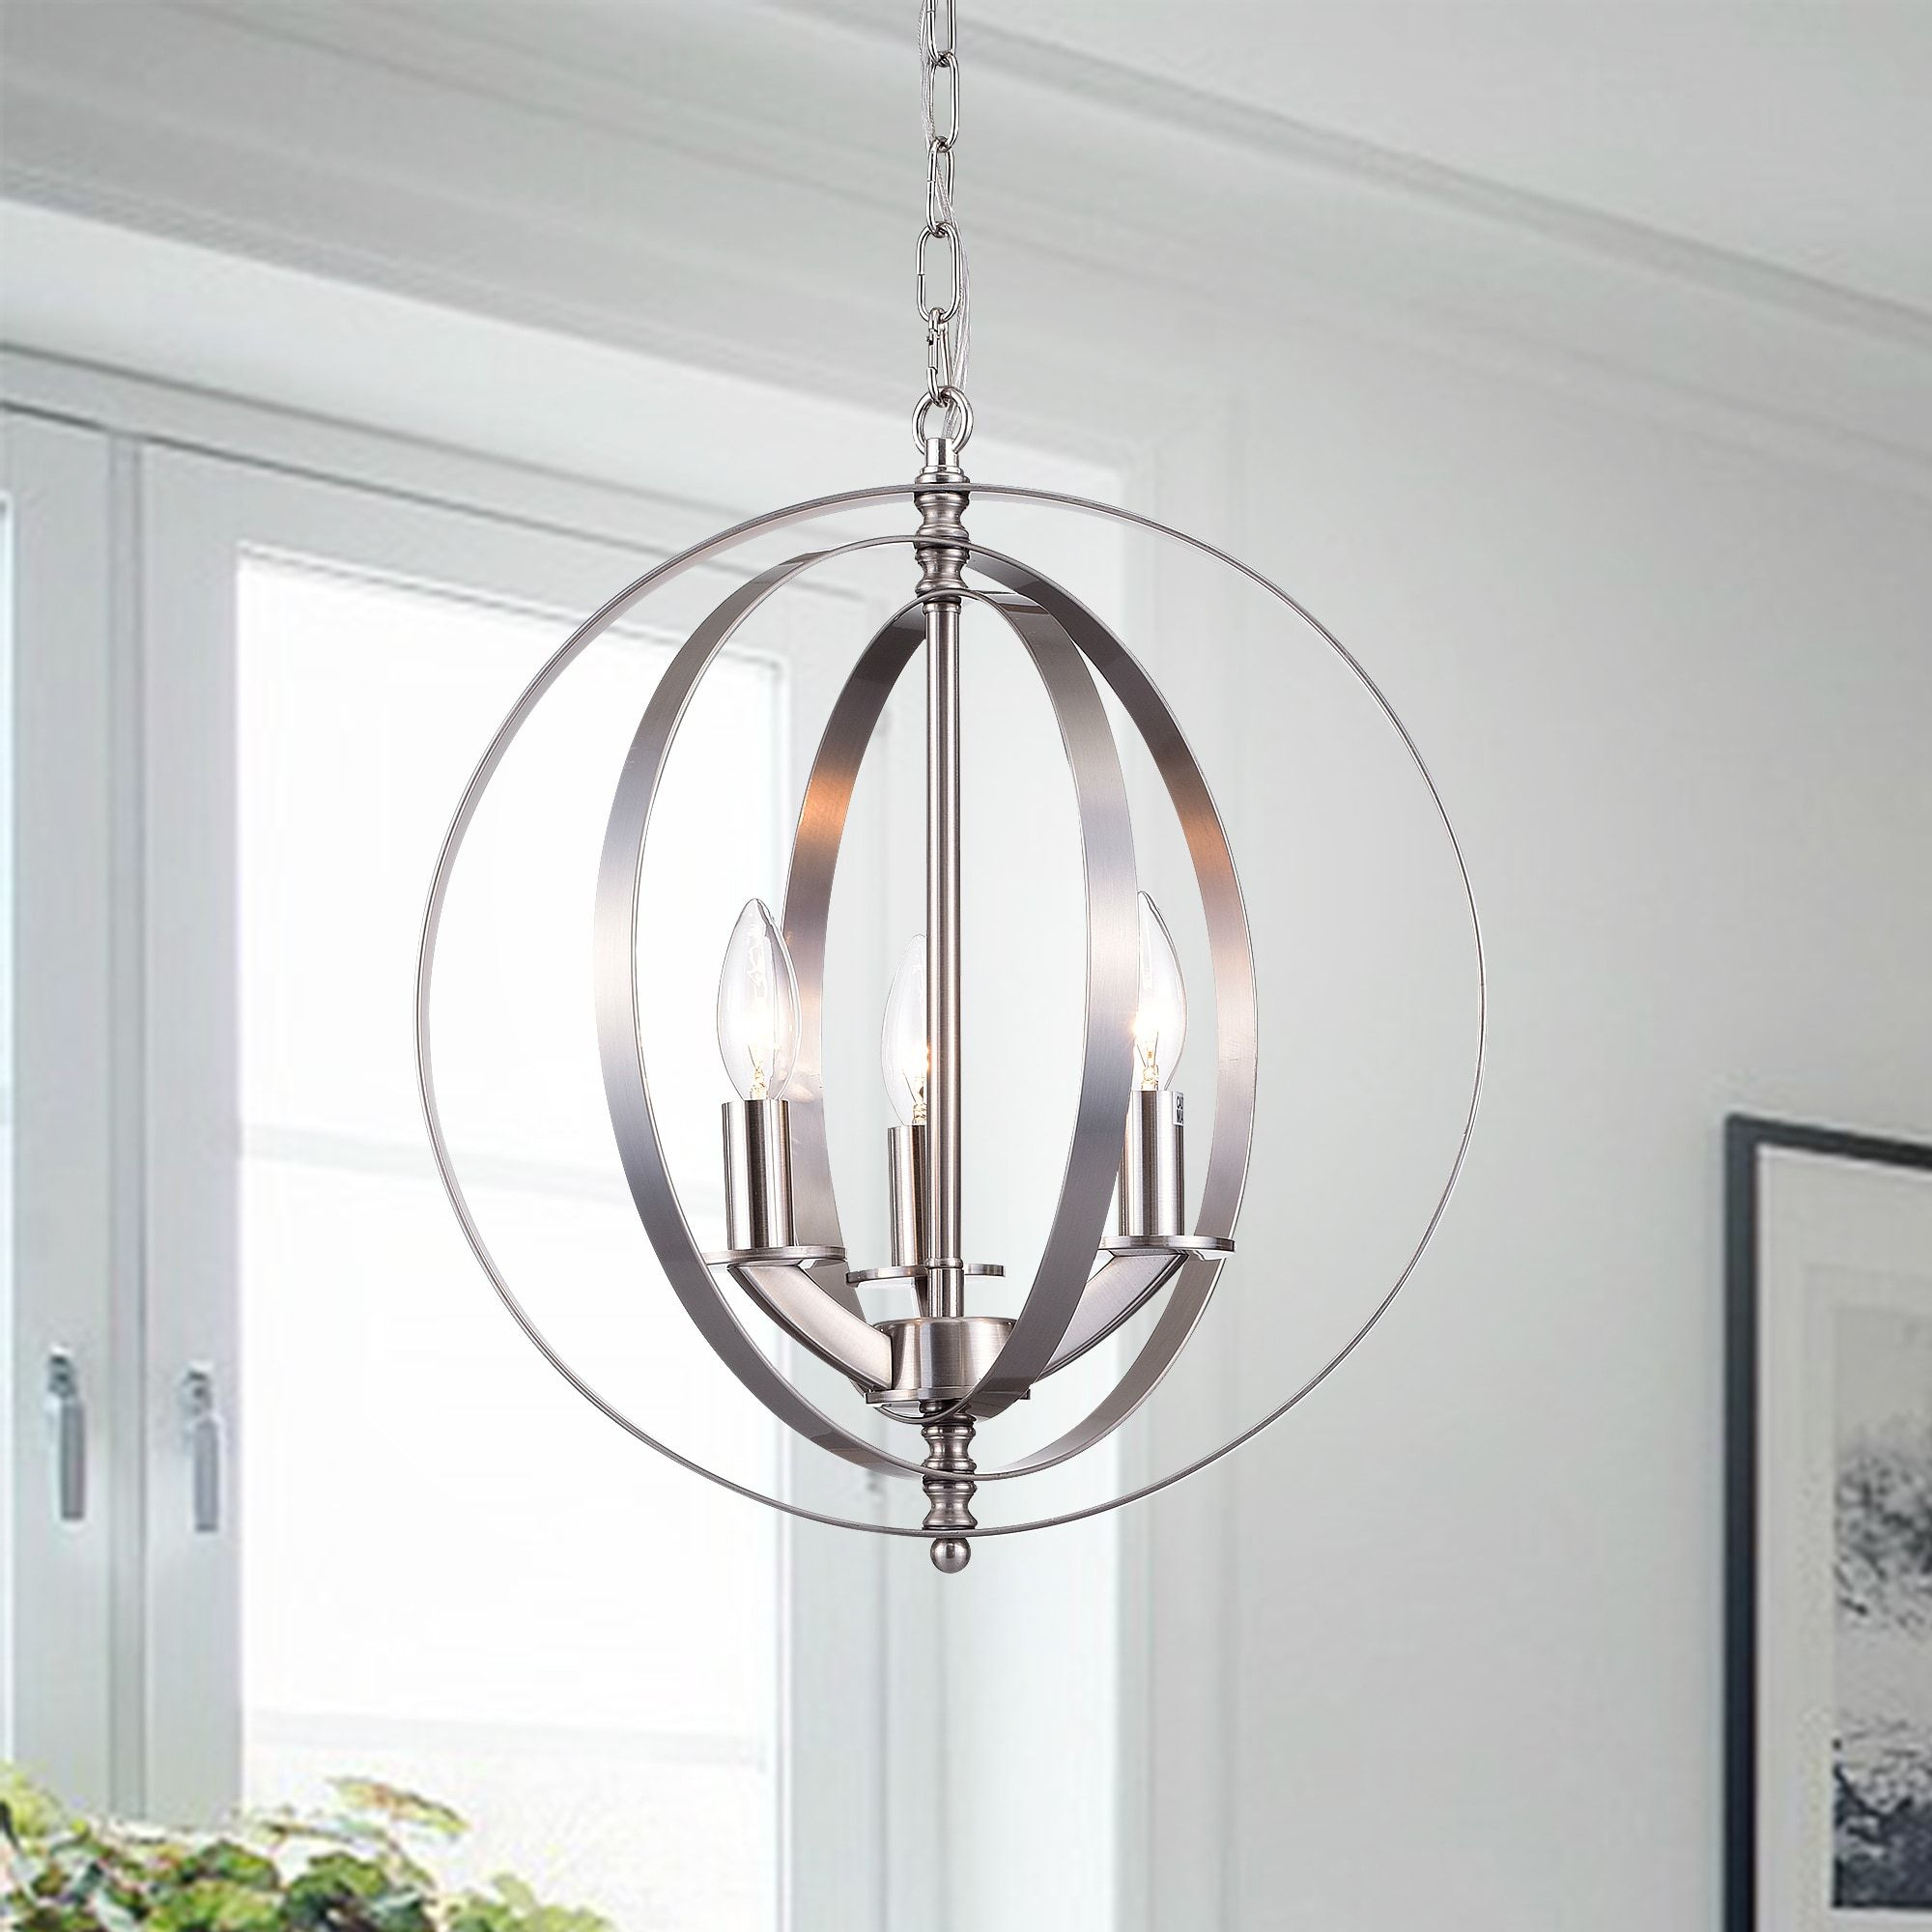 Setsus Chrome 3-Light Chandelier Globe - Free Shipping Today intended for Morganti 4-Light Chandeliers (Image 26 of 30)